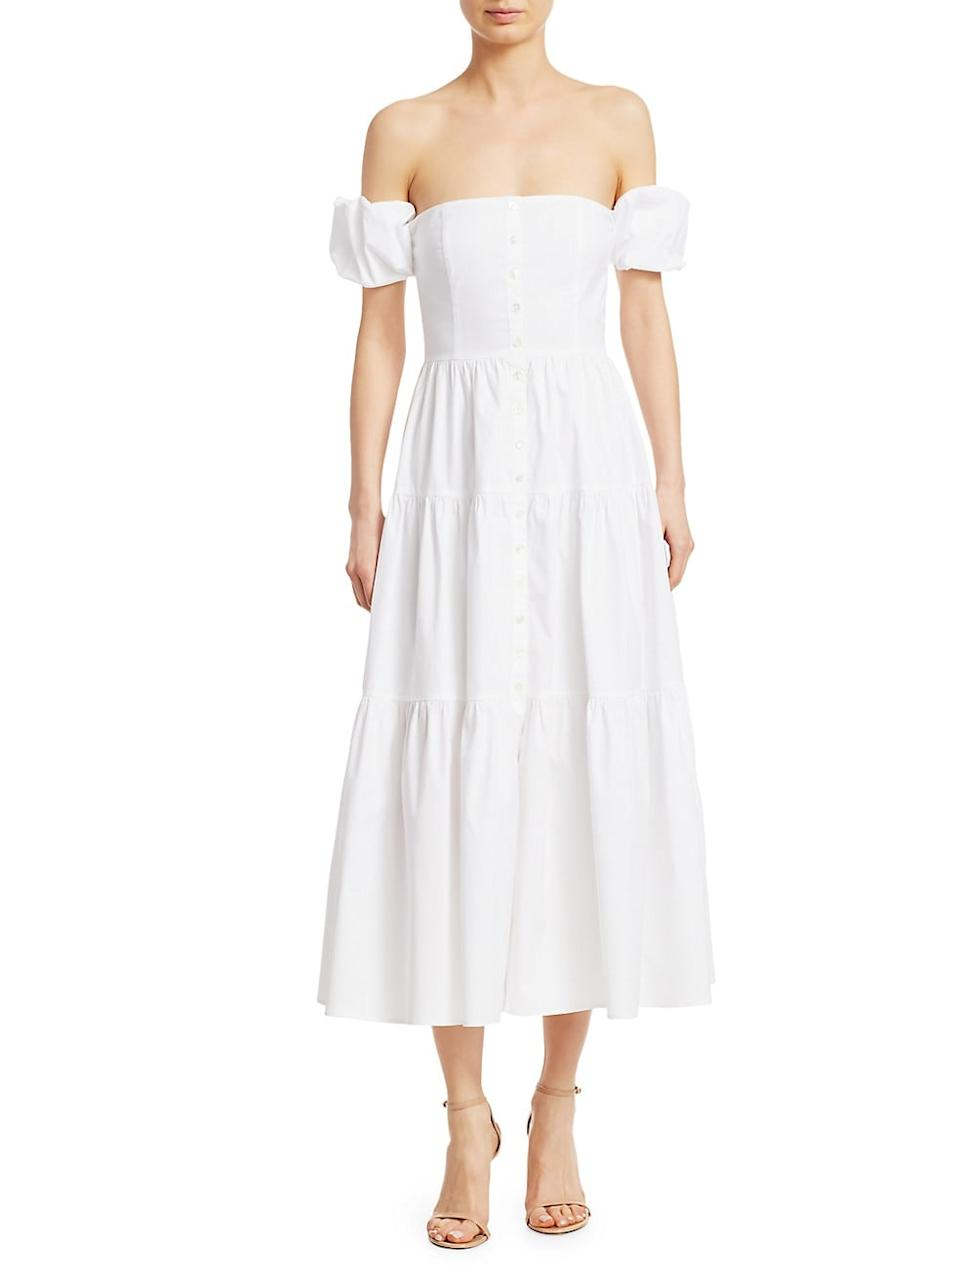 Staud Elio Puff-Sleeve Prairie Dress | SaksFifthAvenue